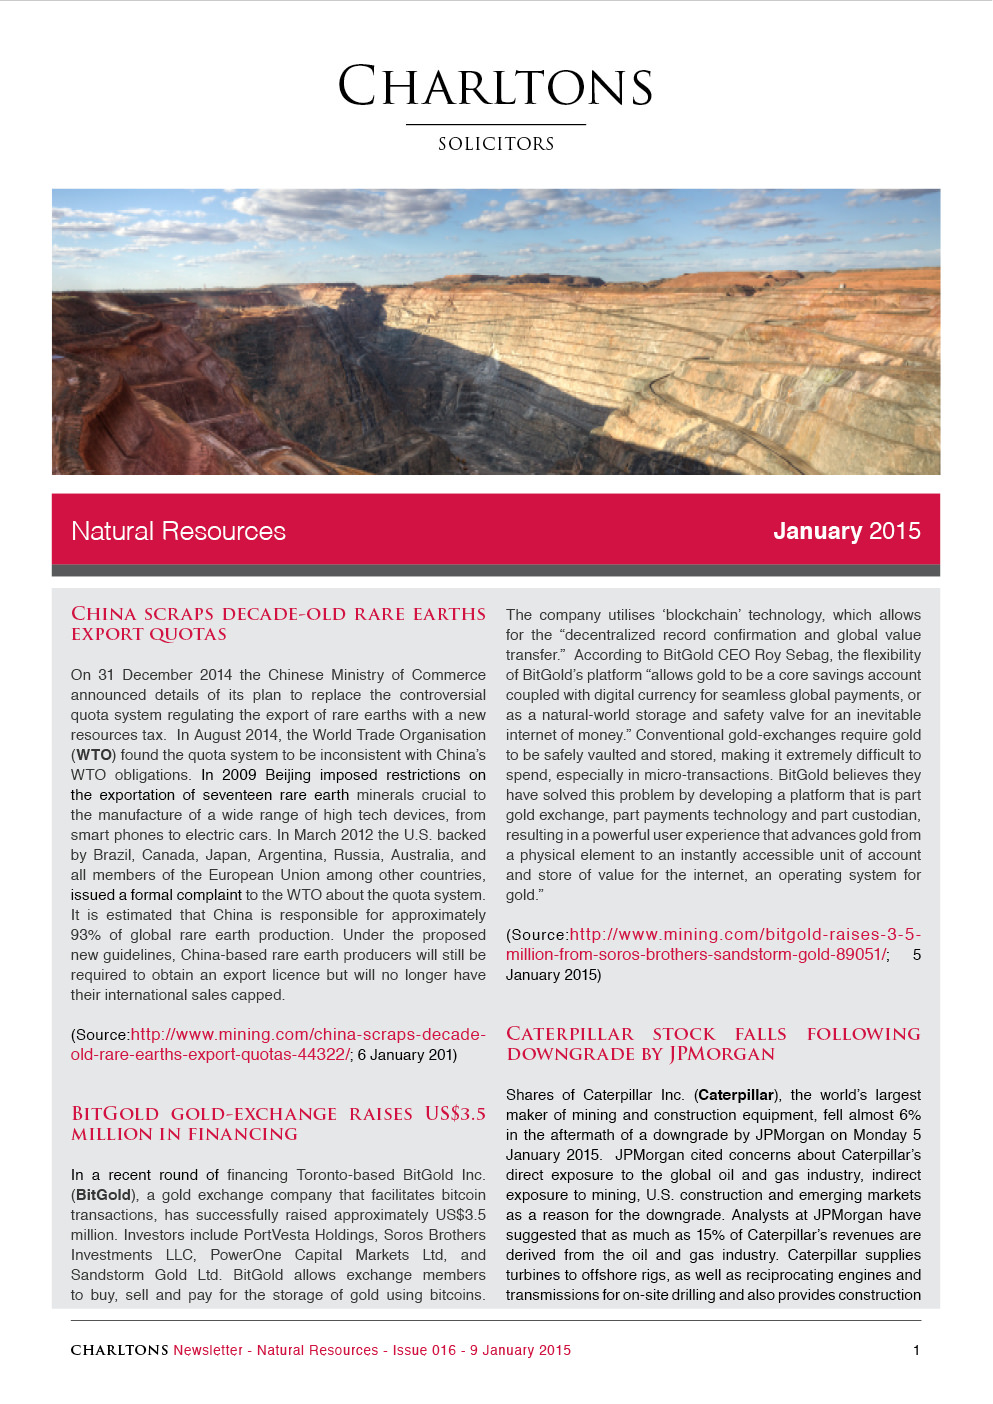 Charltons Natural-Resources-Newsletter China-scraps-decade-old-rare-earths-exports-quotas-2015.01.09-16-1